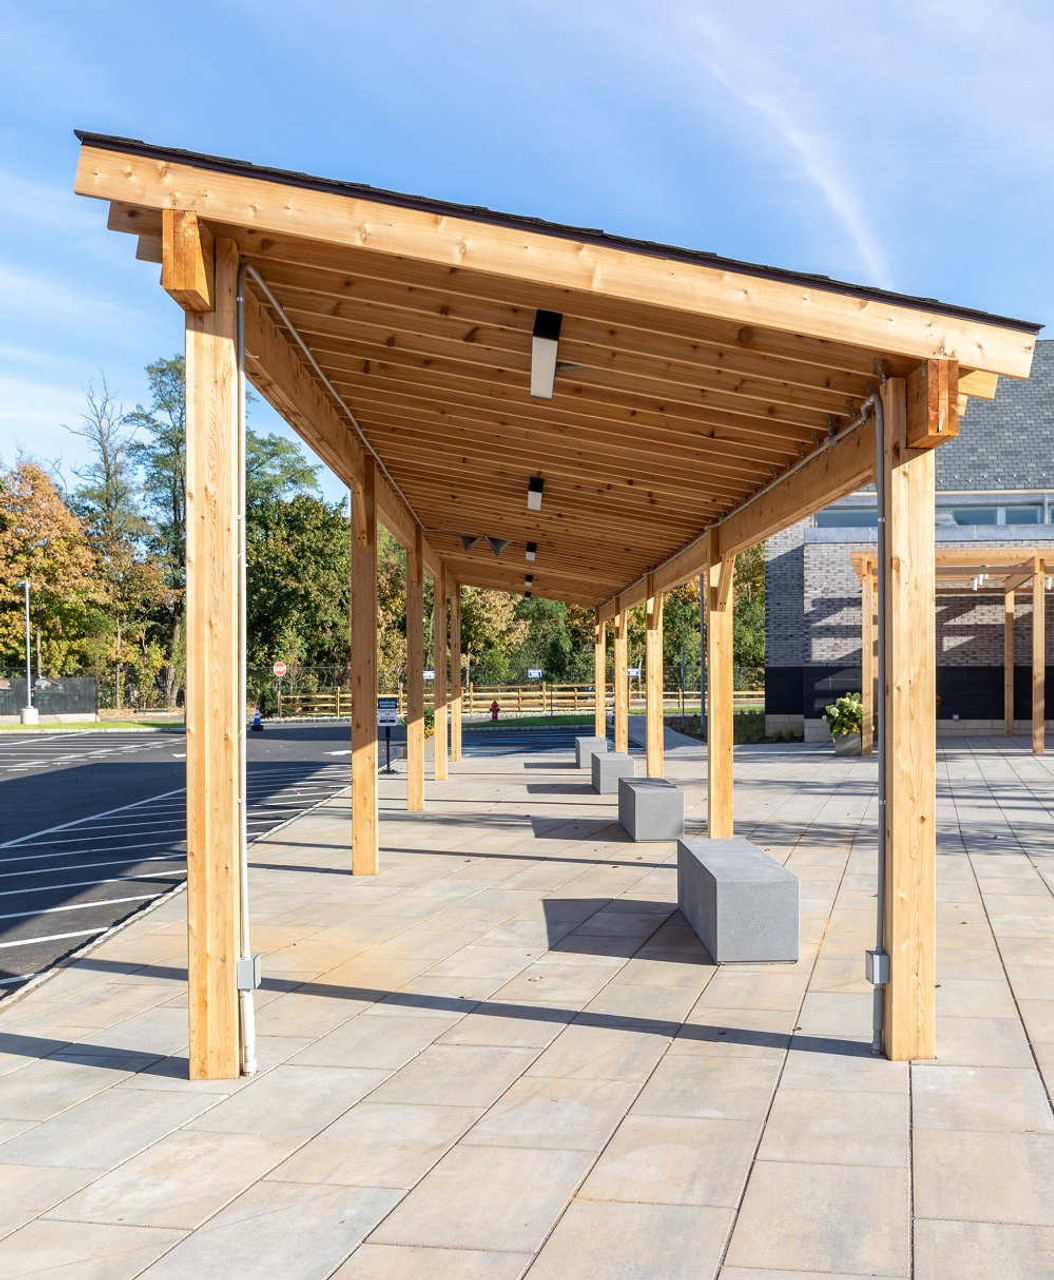 Structures for a Private School in NJ